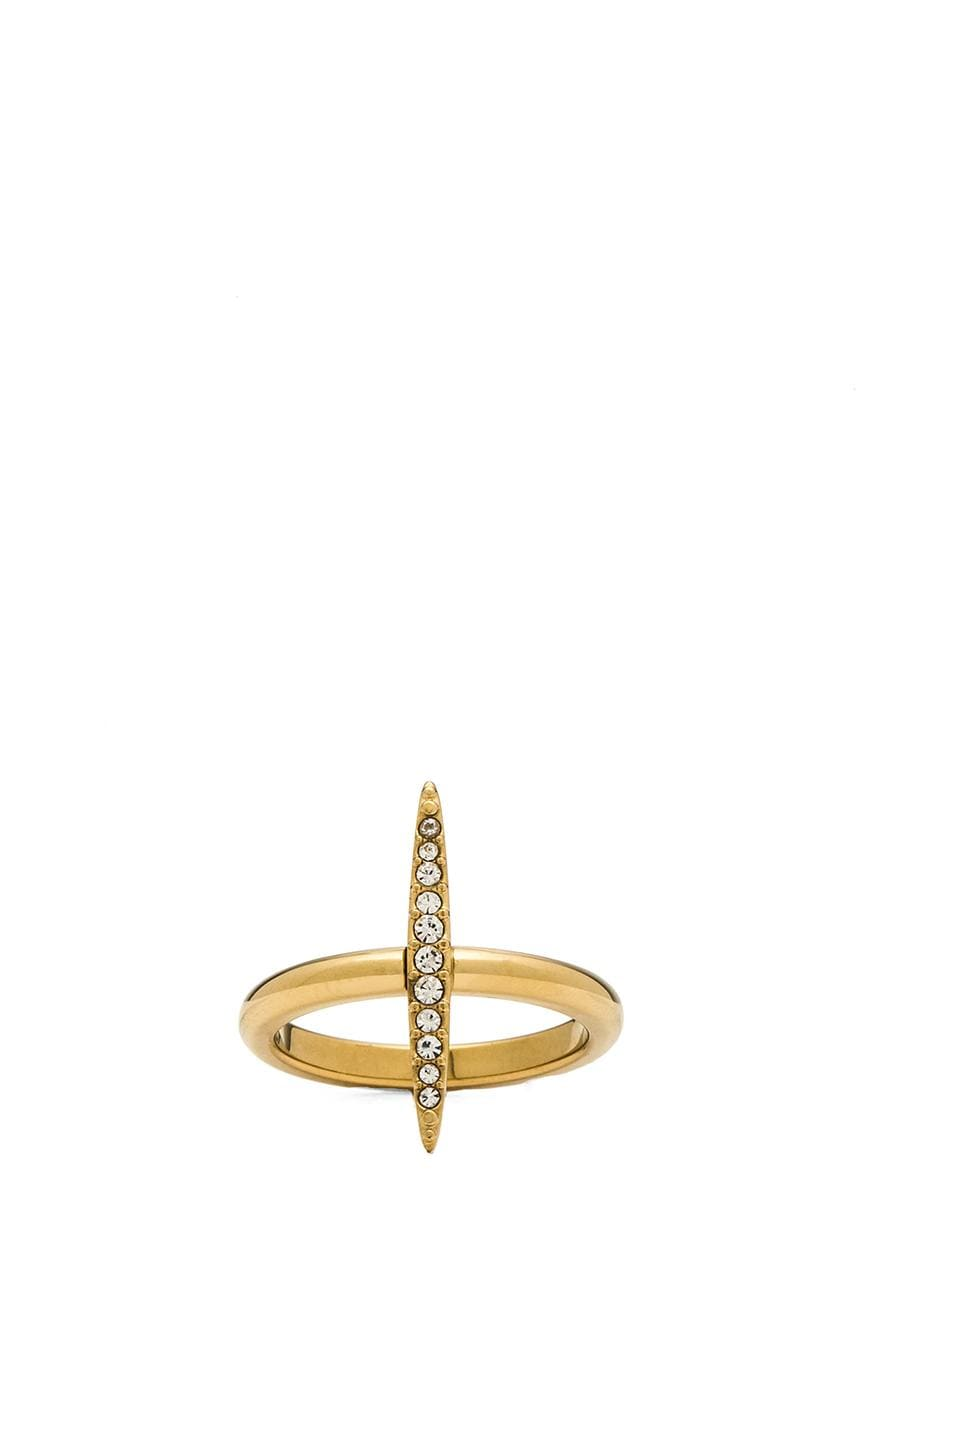 Michael Kors Matchstick Ring in Gold